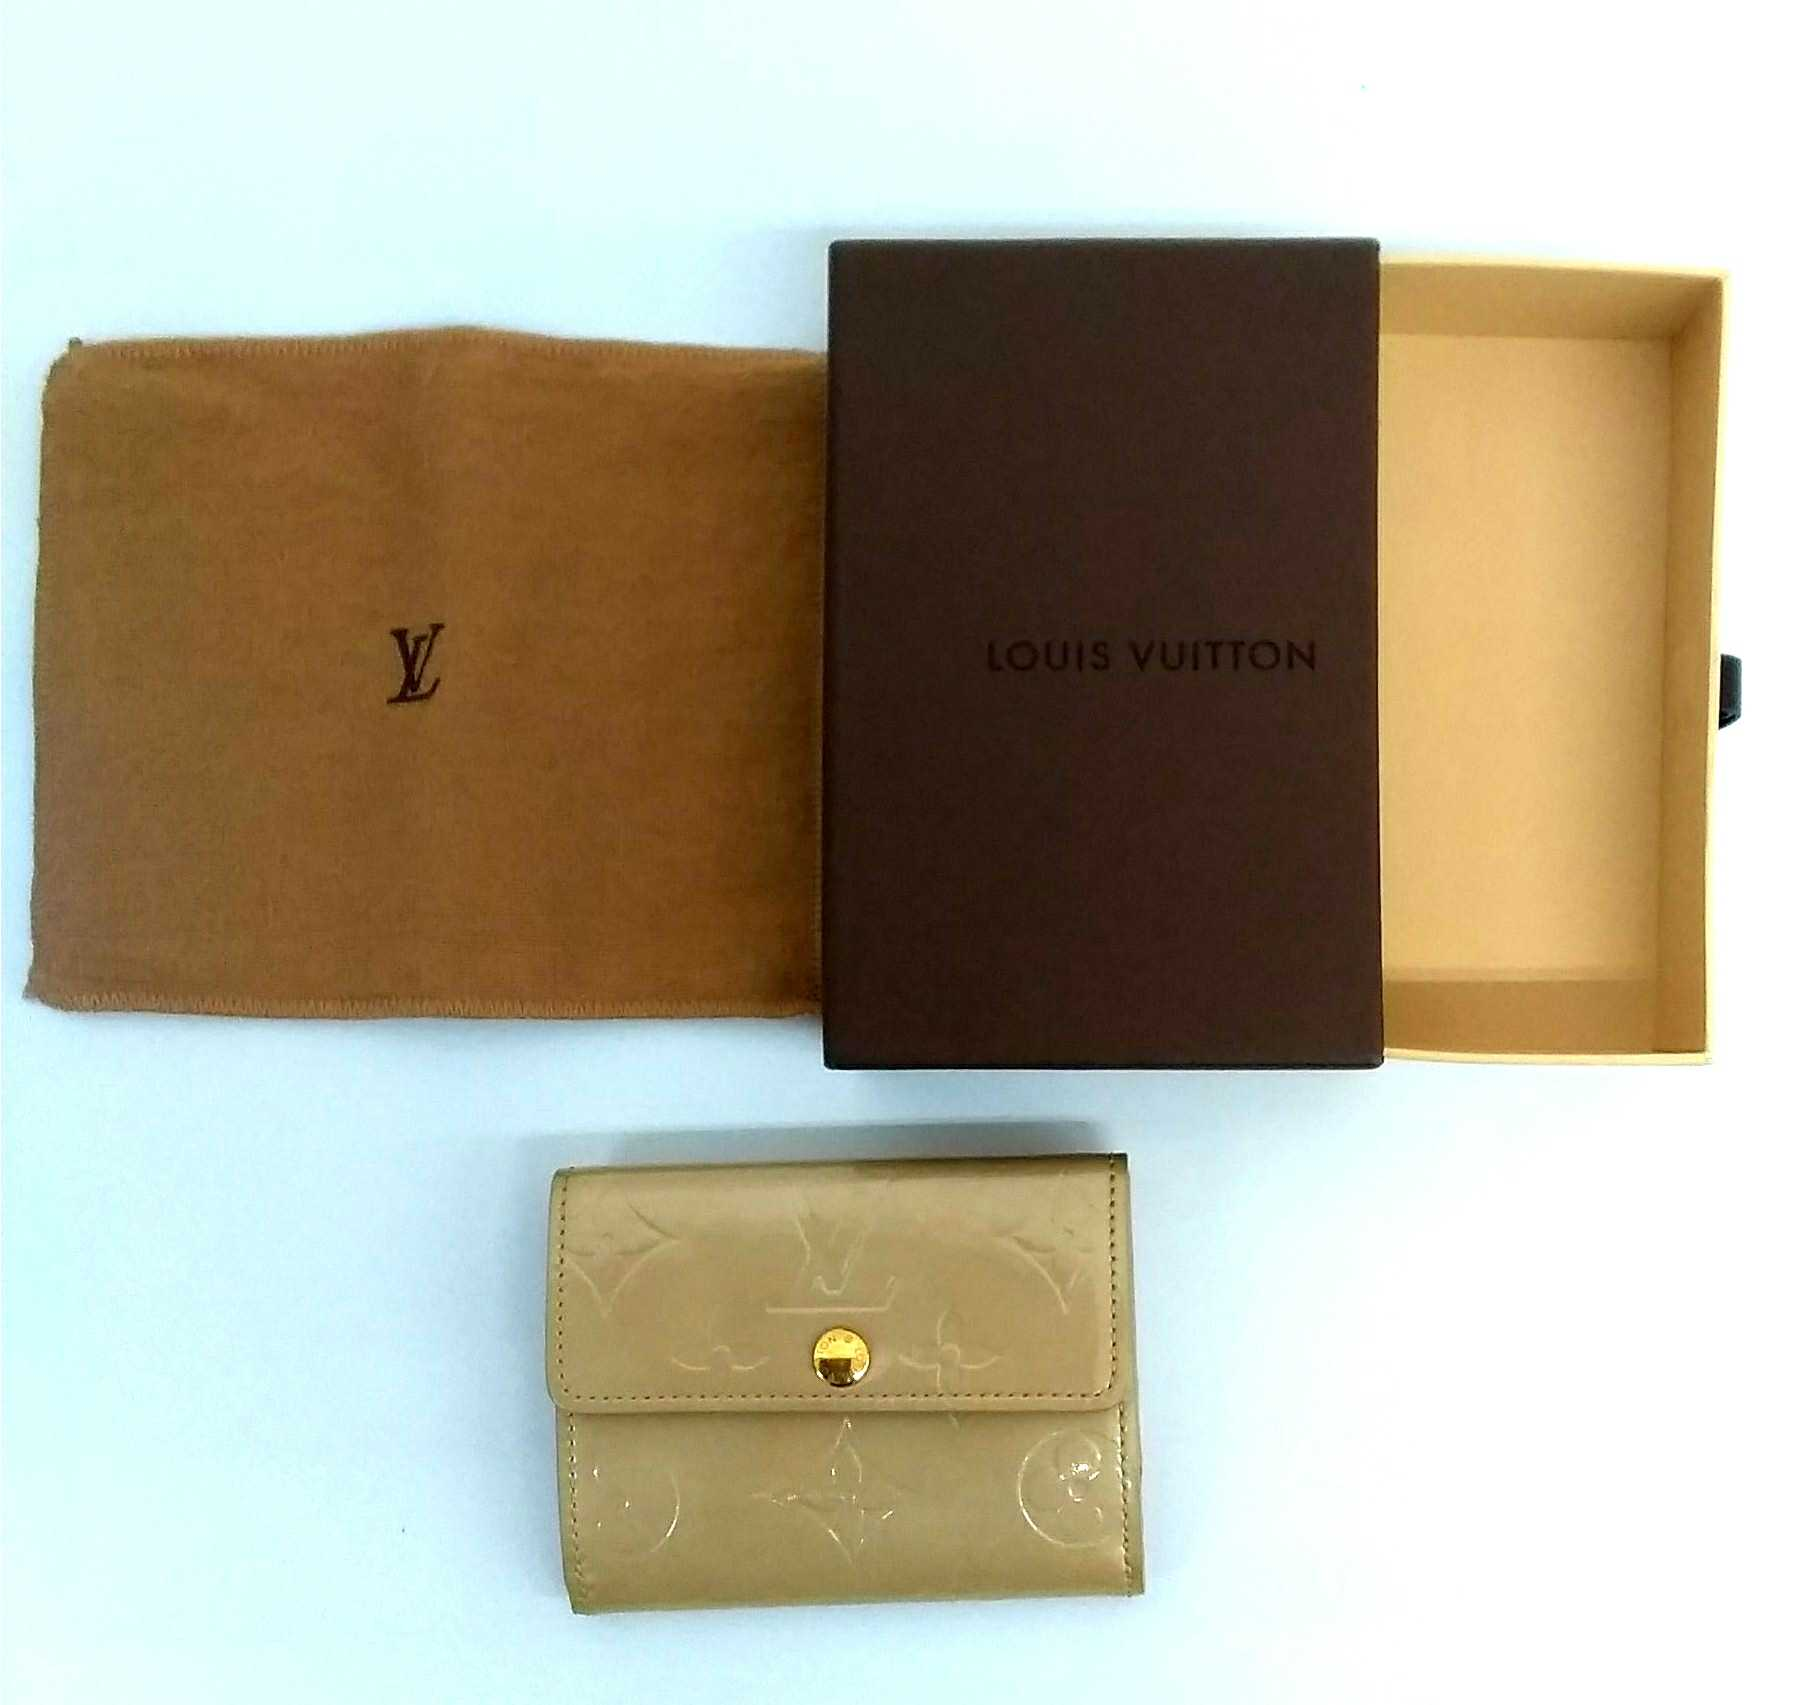 ラドロー|LOUIS VUITTON